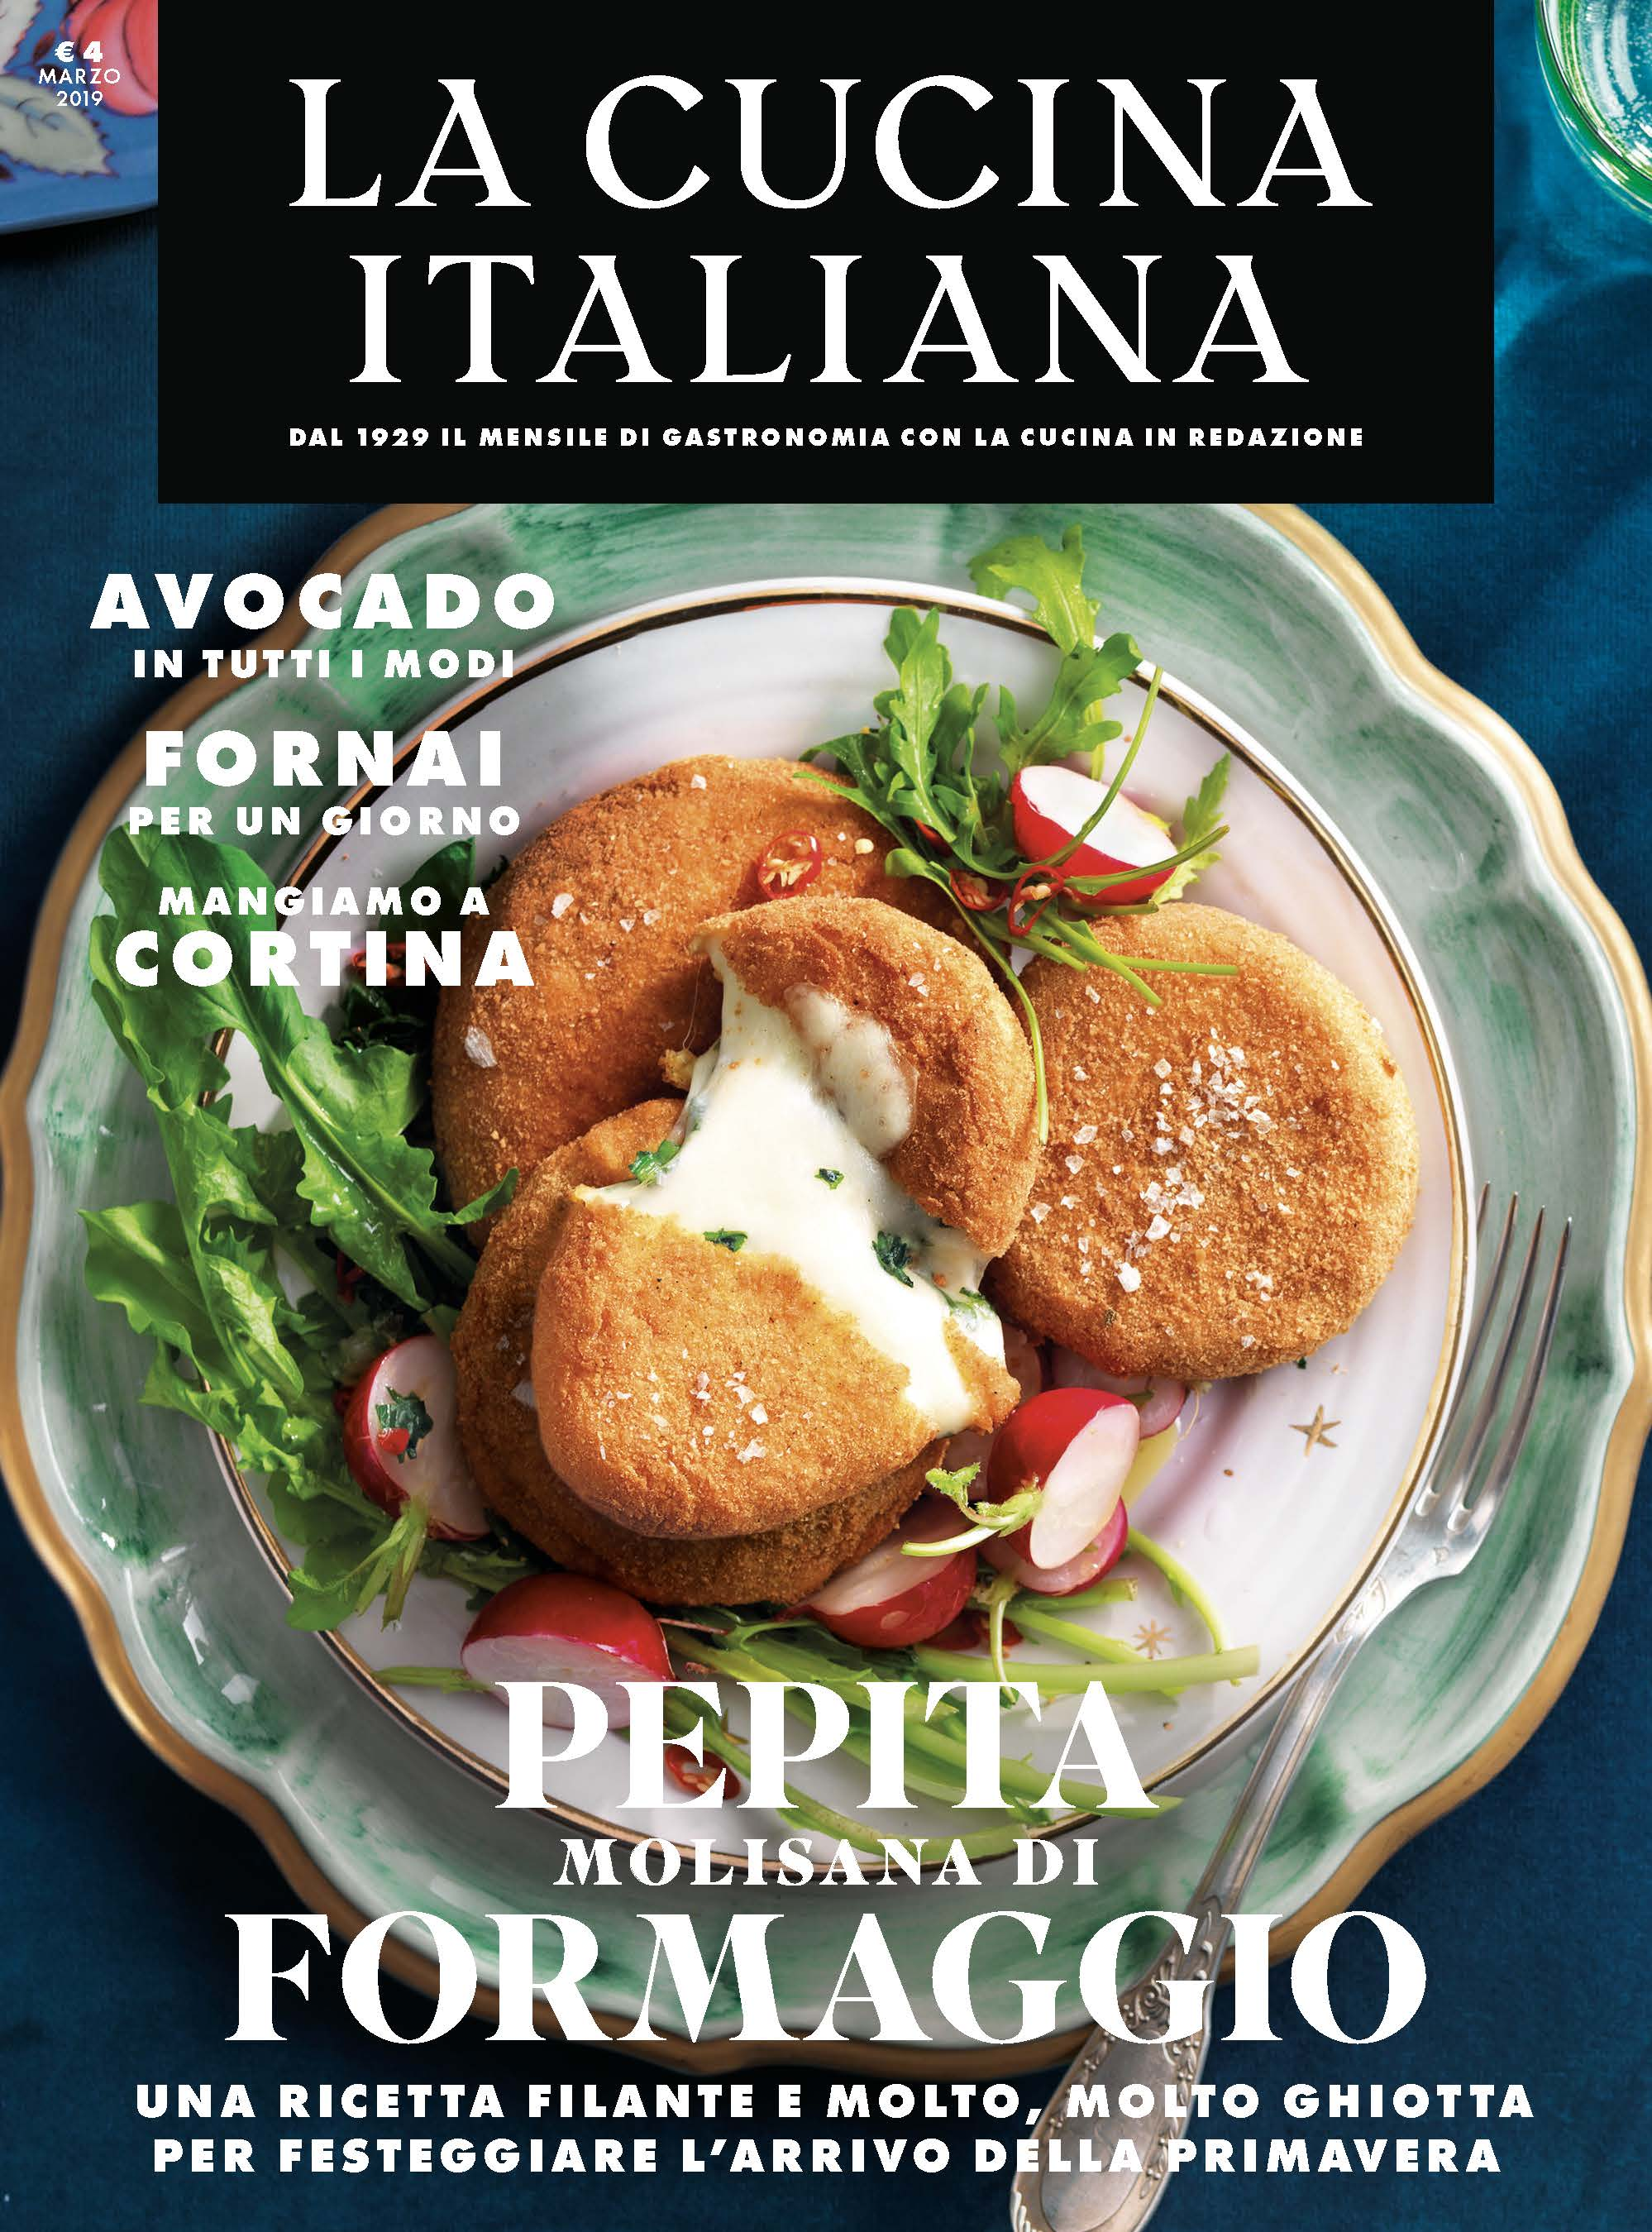 The Magazine Of La Cucina Italiana La Cucina Italiana Arriva Su Amazon Alexa Wired